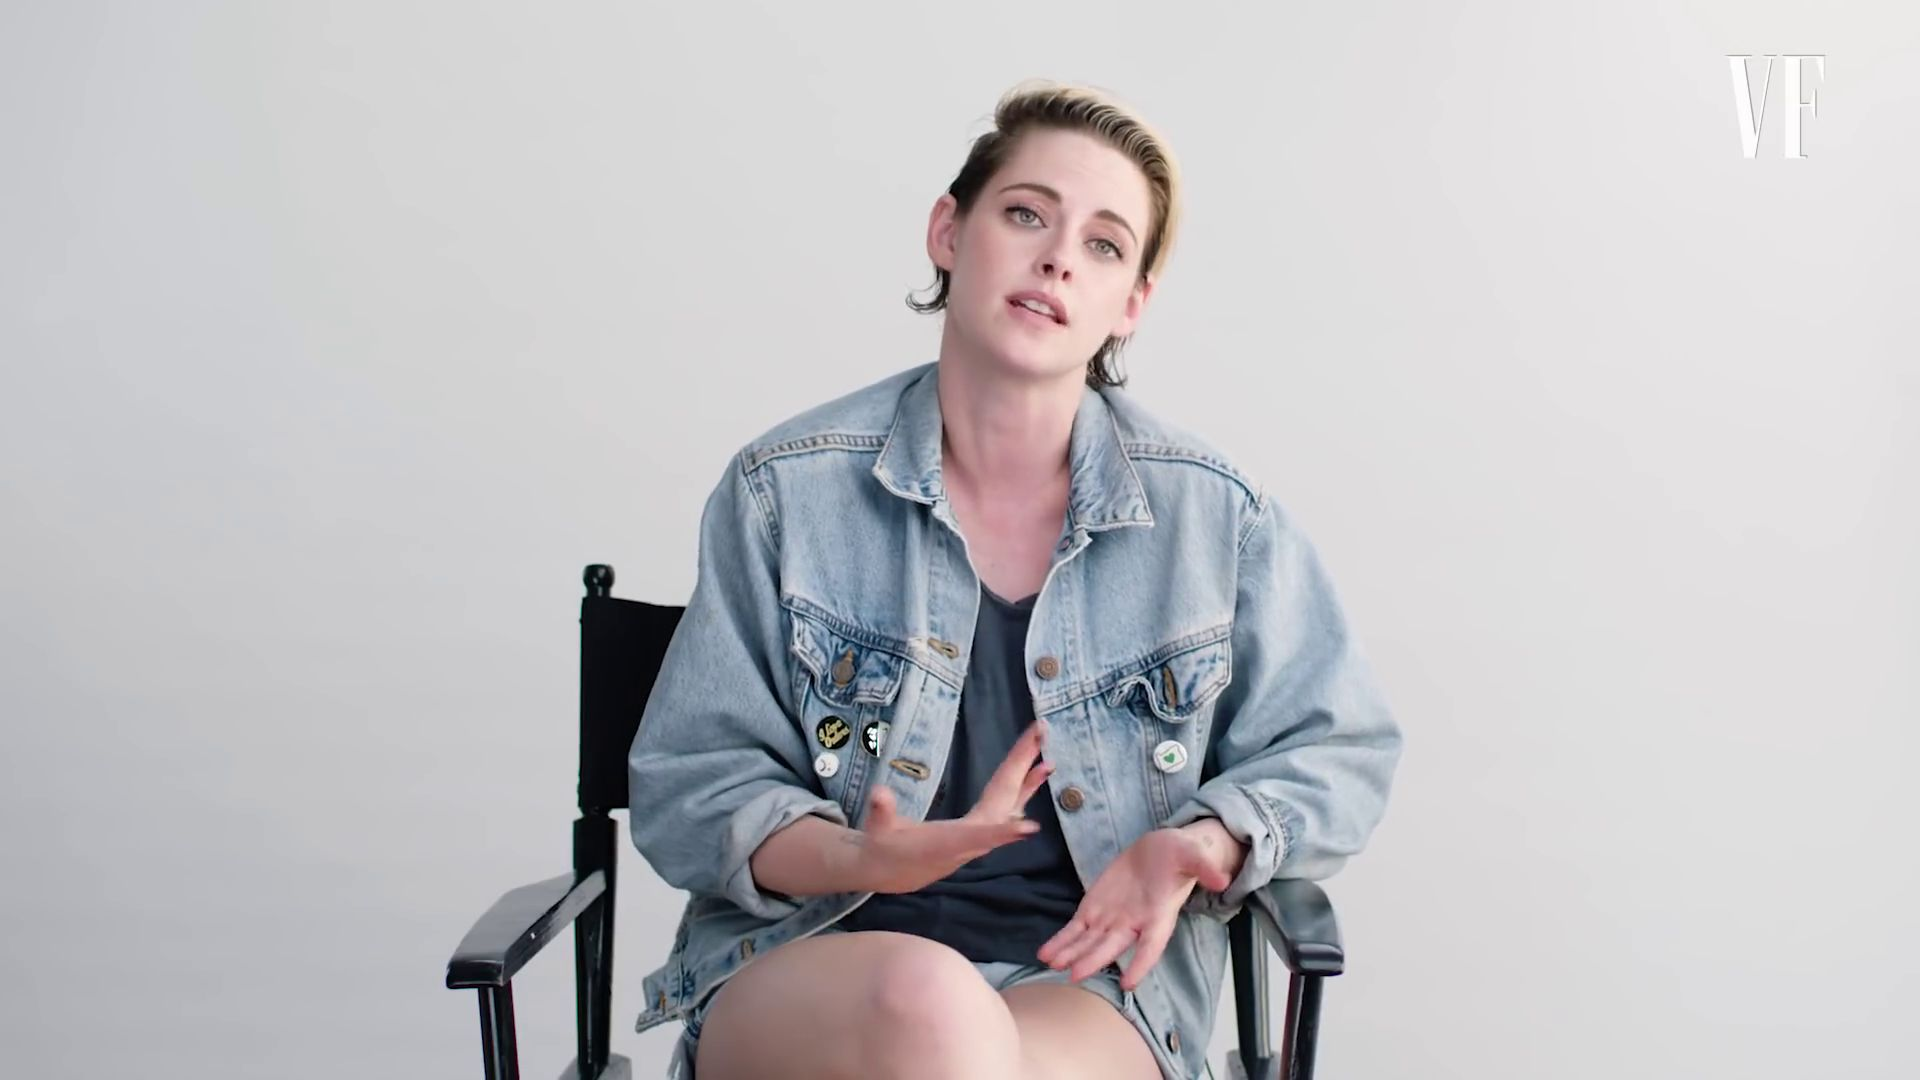 Pics of kristen stewart and her family